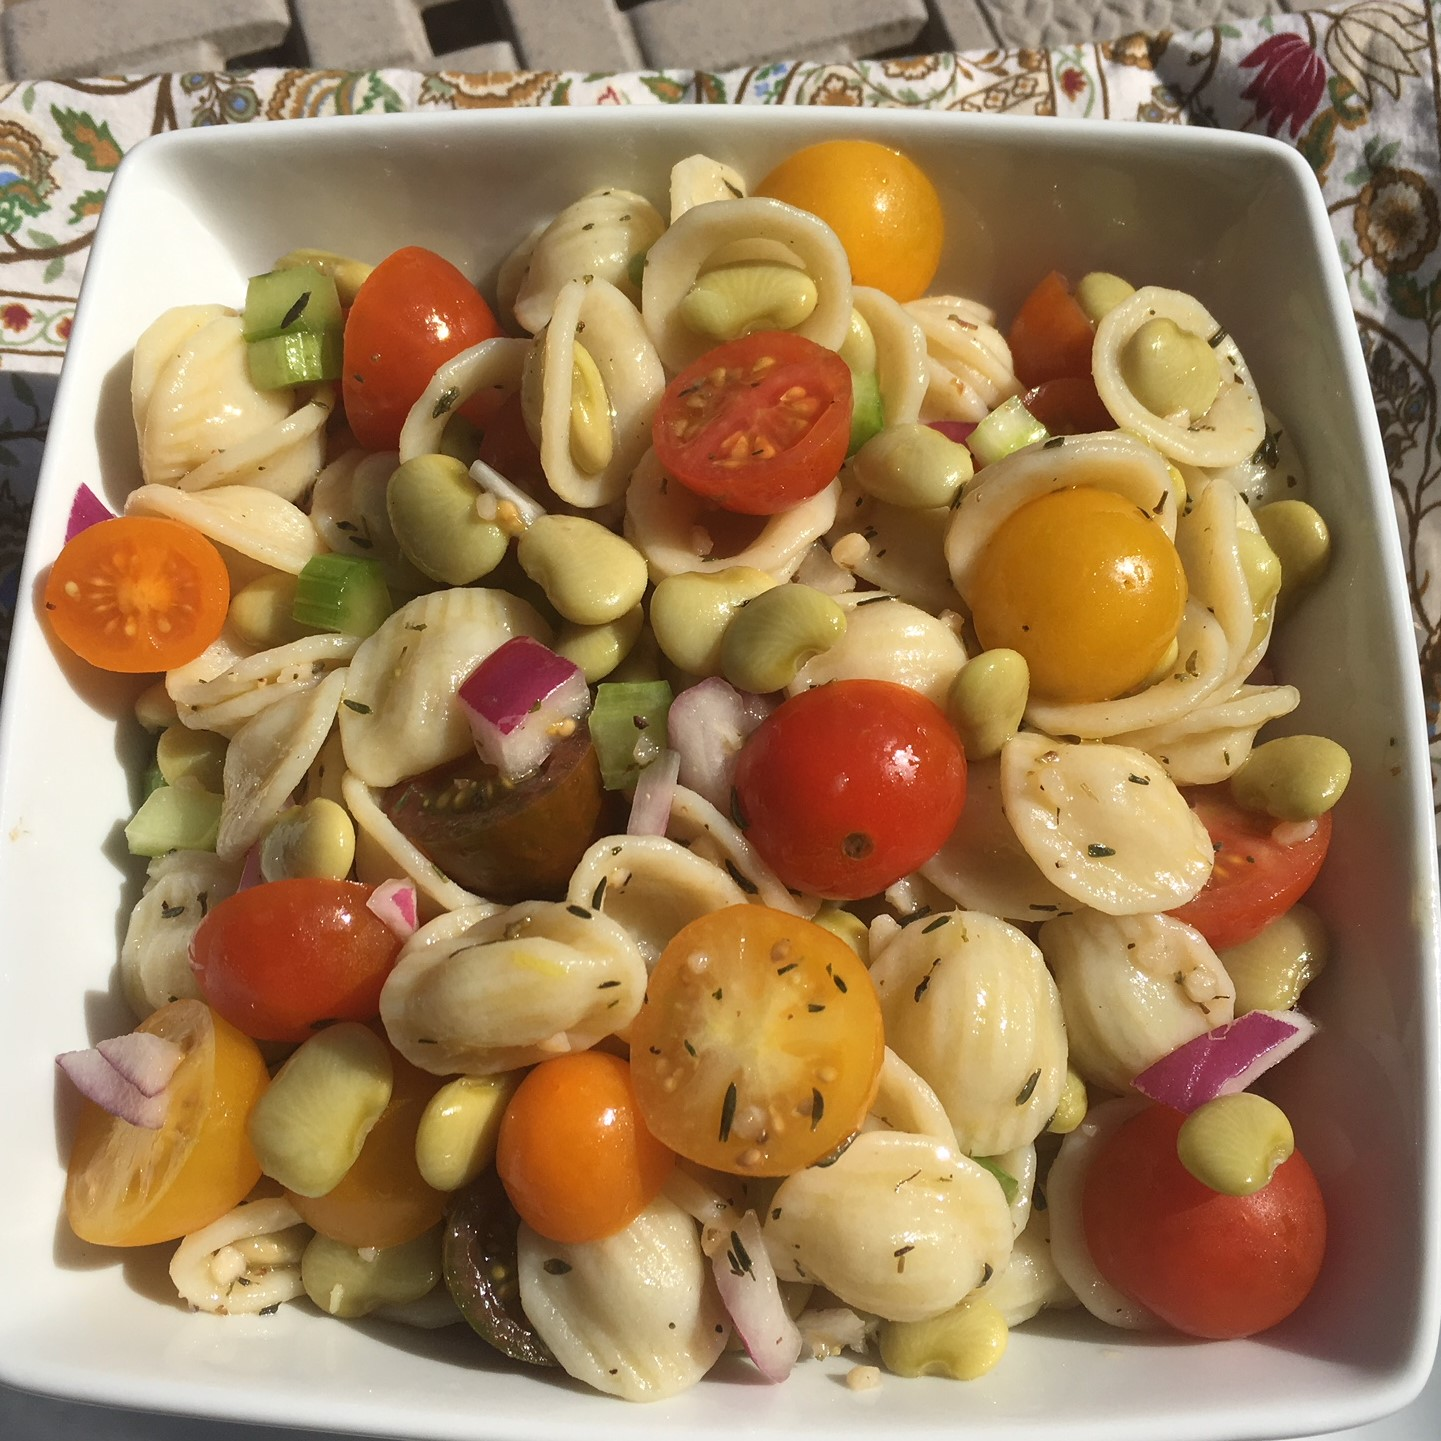 Tuscan Fava Bean and Orecchiette Pasta Salad